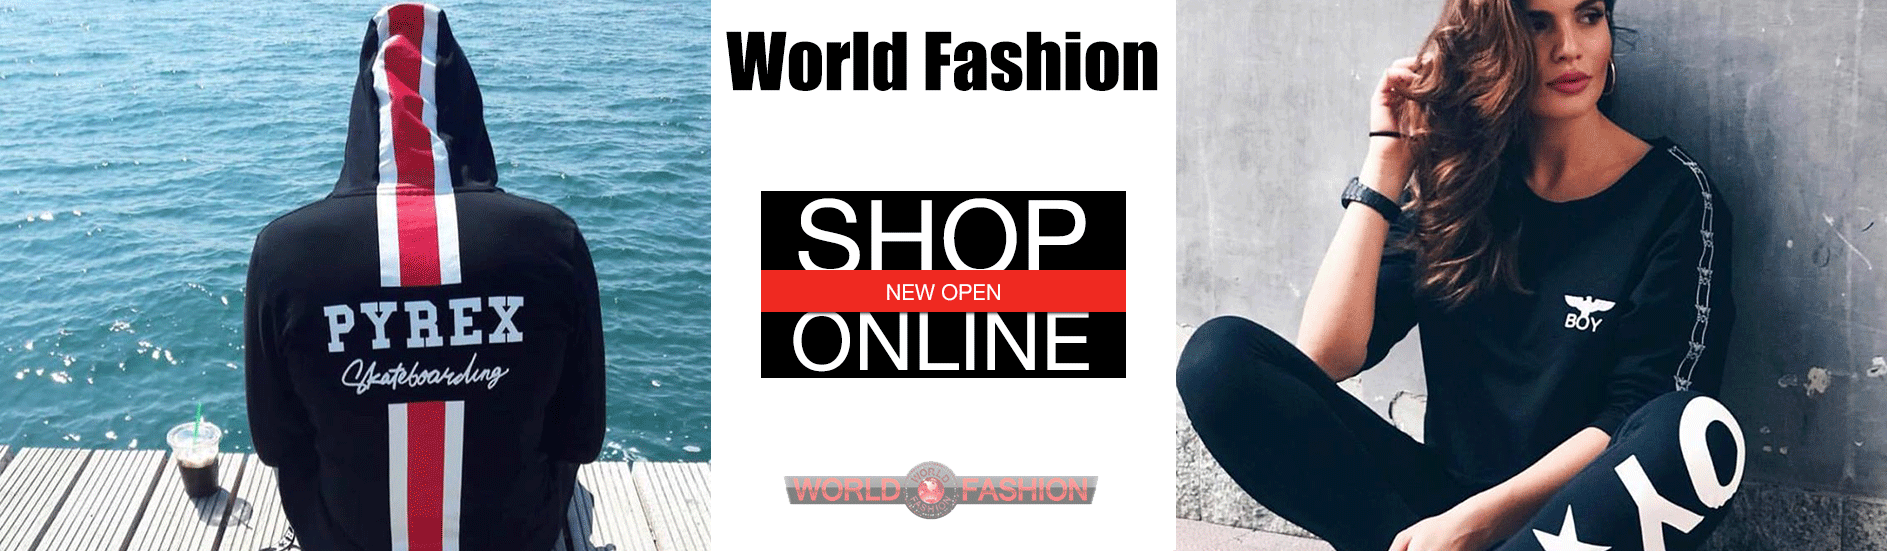 World-Fashion-Shop-On-Line-Pyrex-Boy-London